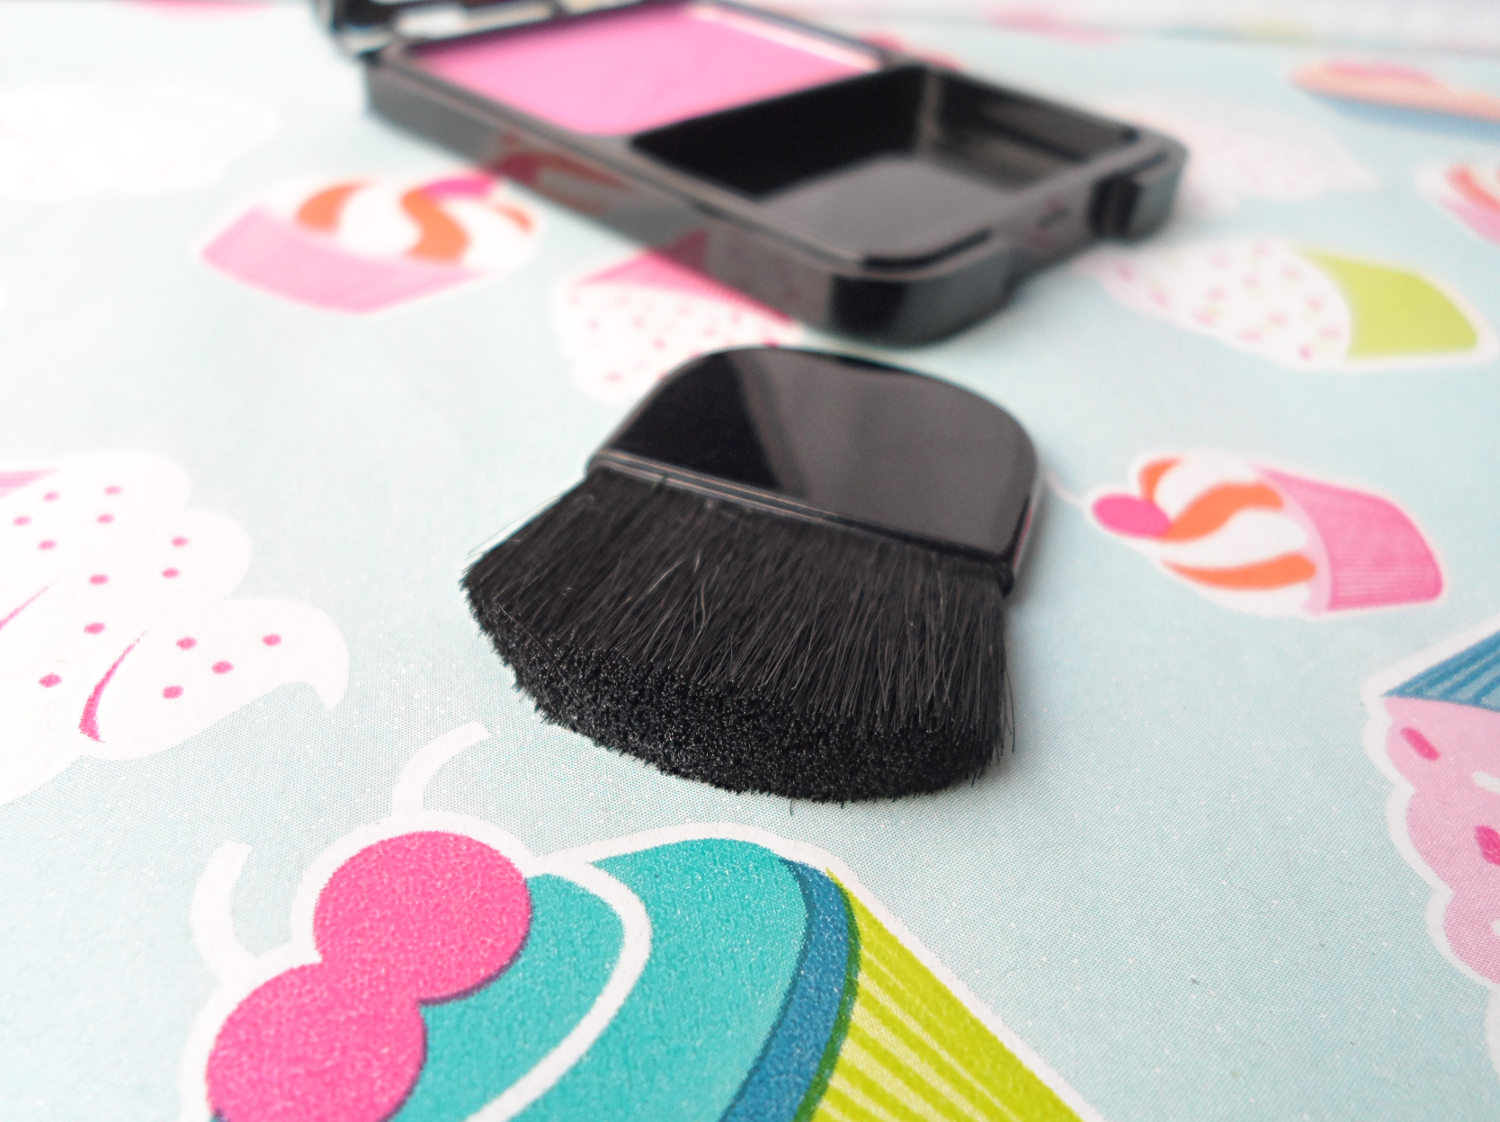 Beauty UK blush brush review pictures